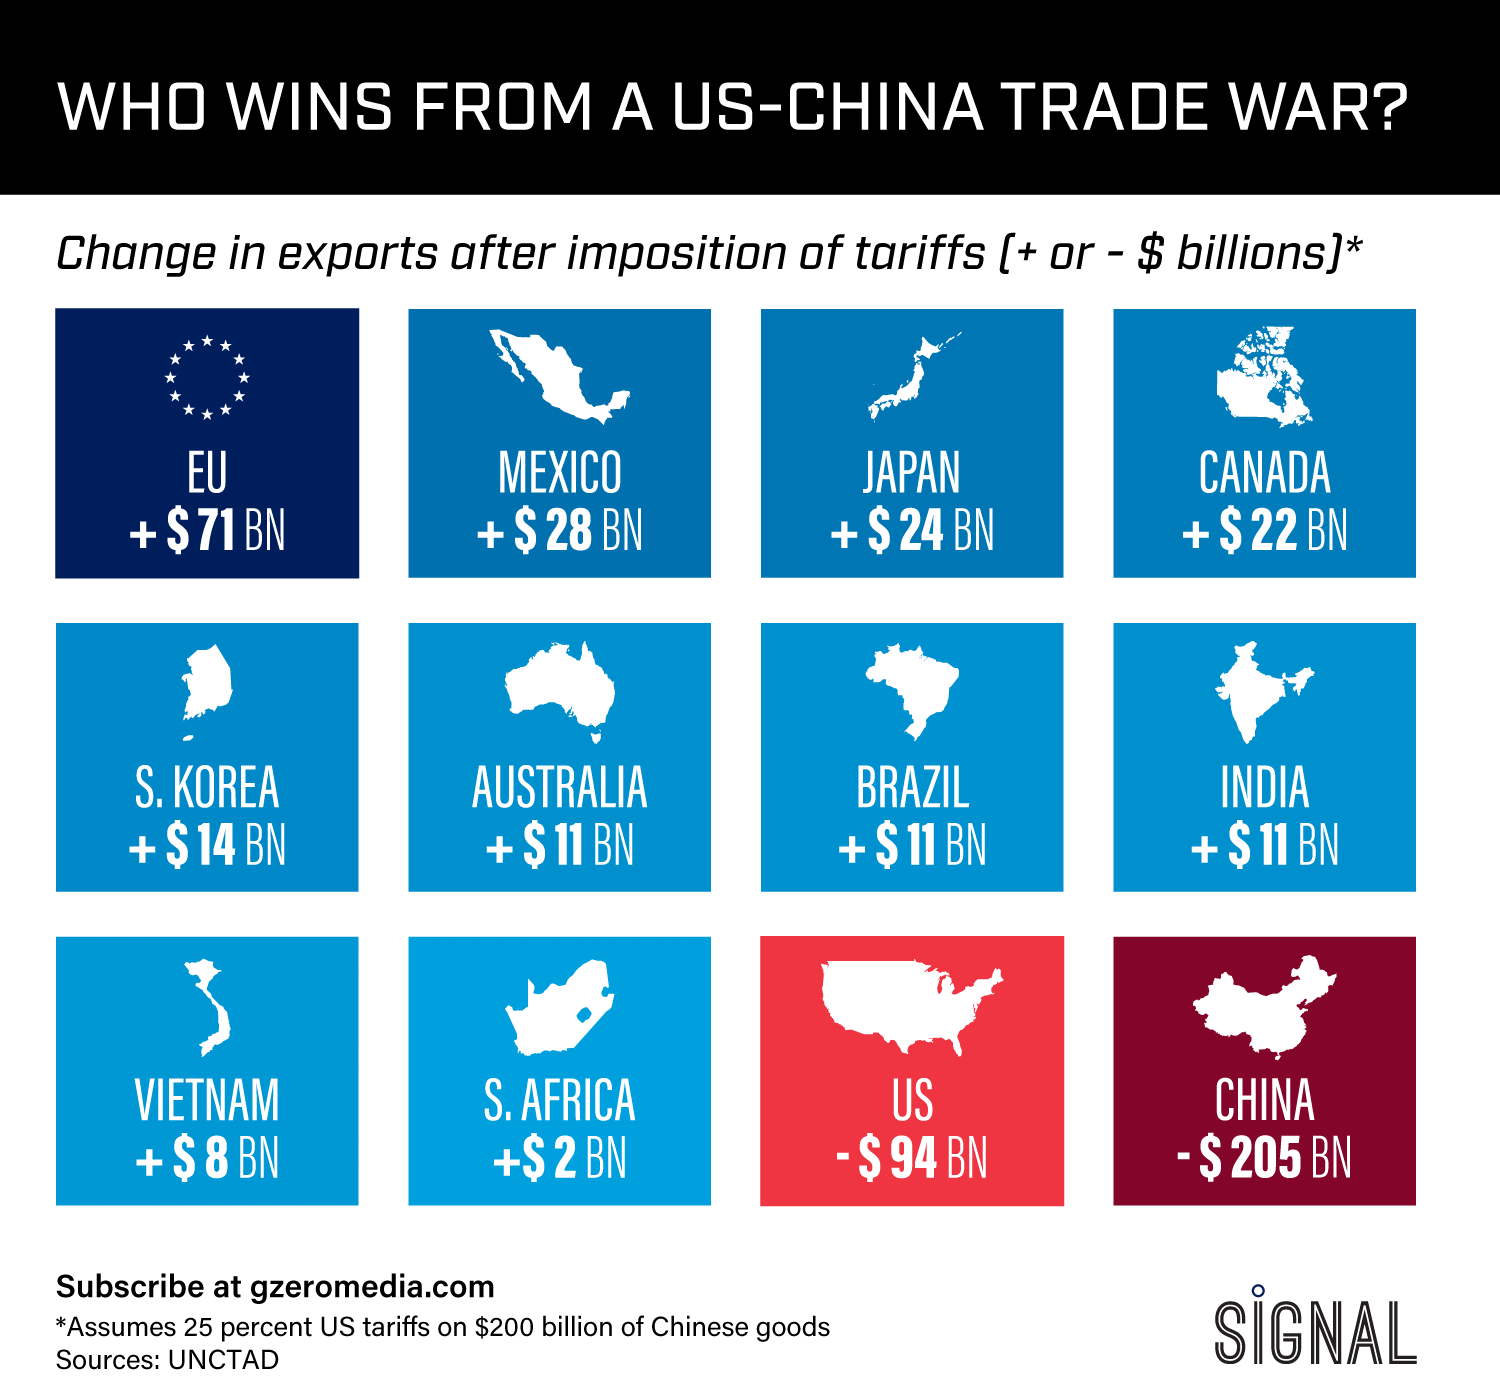 Graphic Truth: Who Wins From A US-China Trade War?